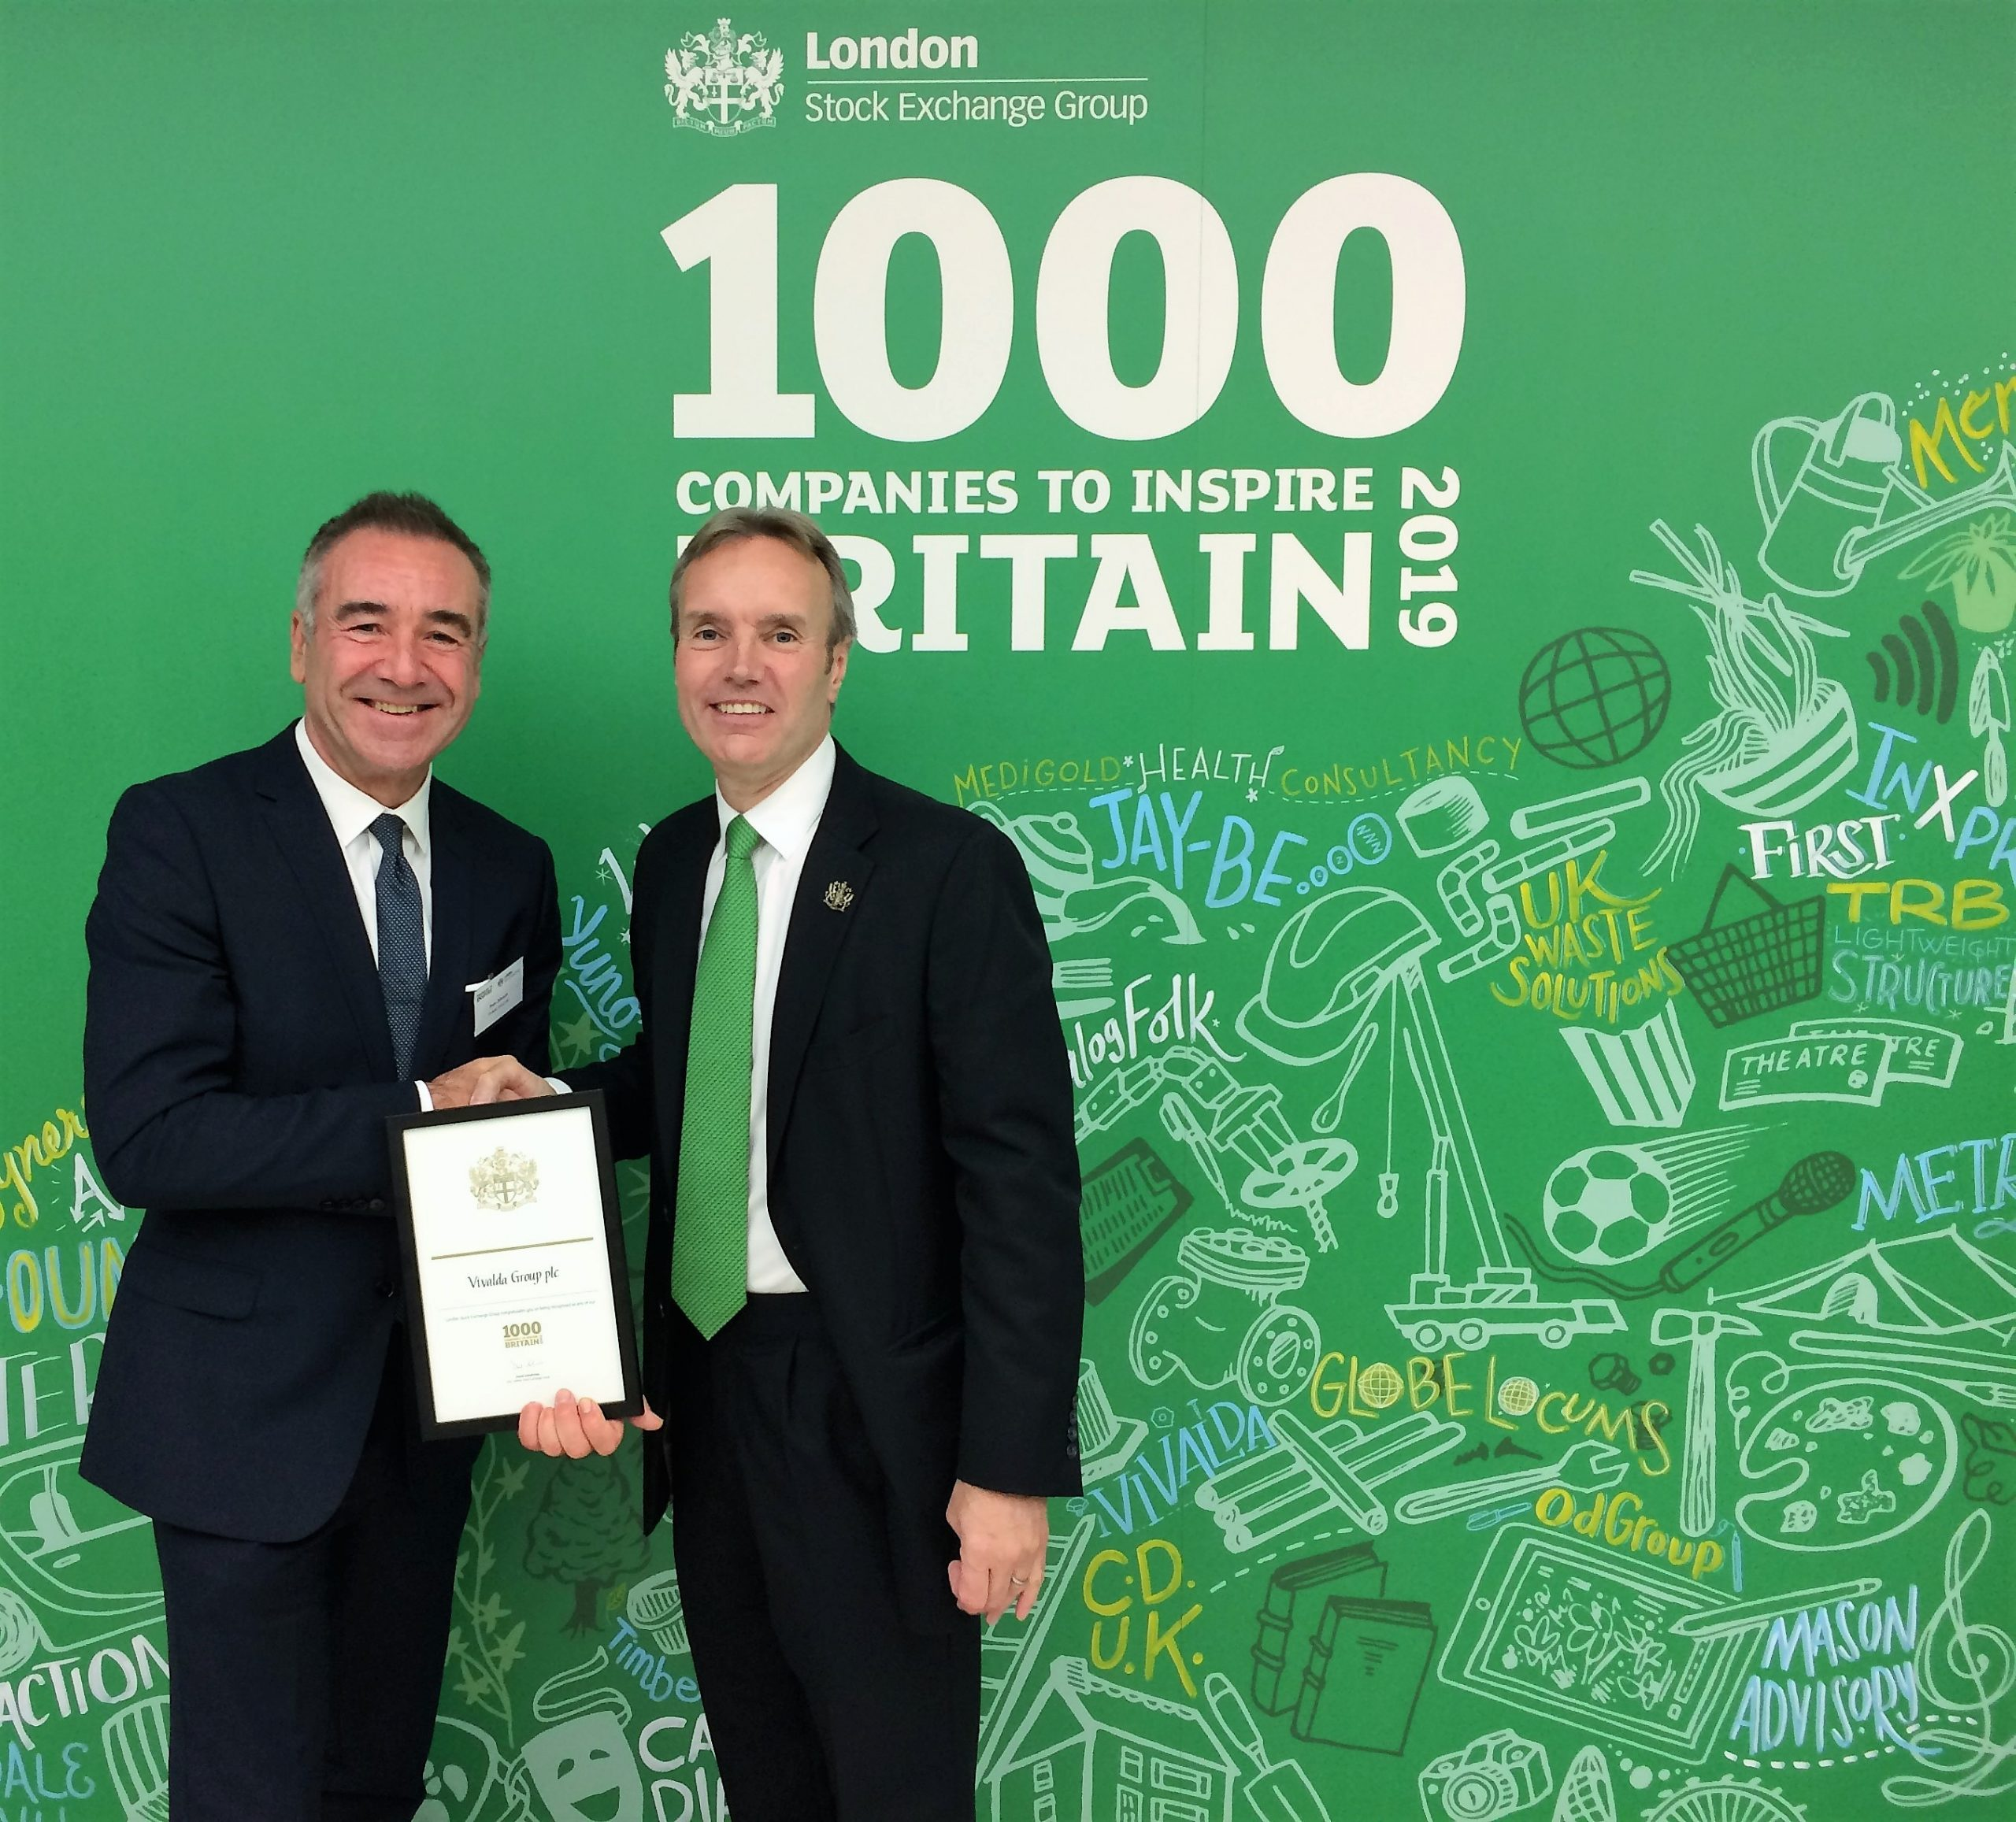 Vivalda Group listed in London Stock Exchange Group's '1000 Companies to Inspire Britain' 2019 report for third year